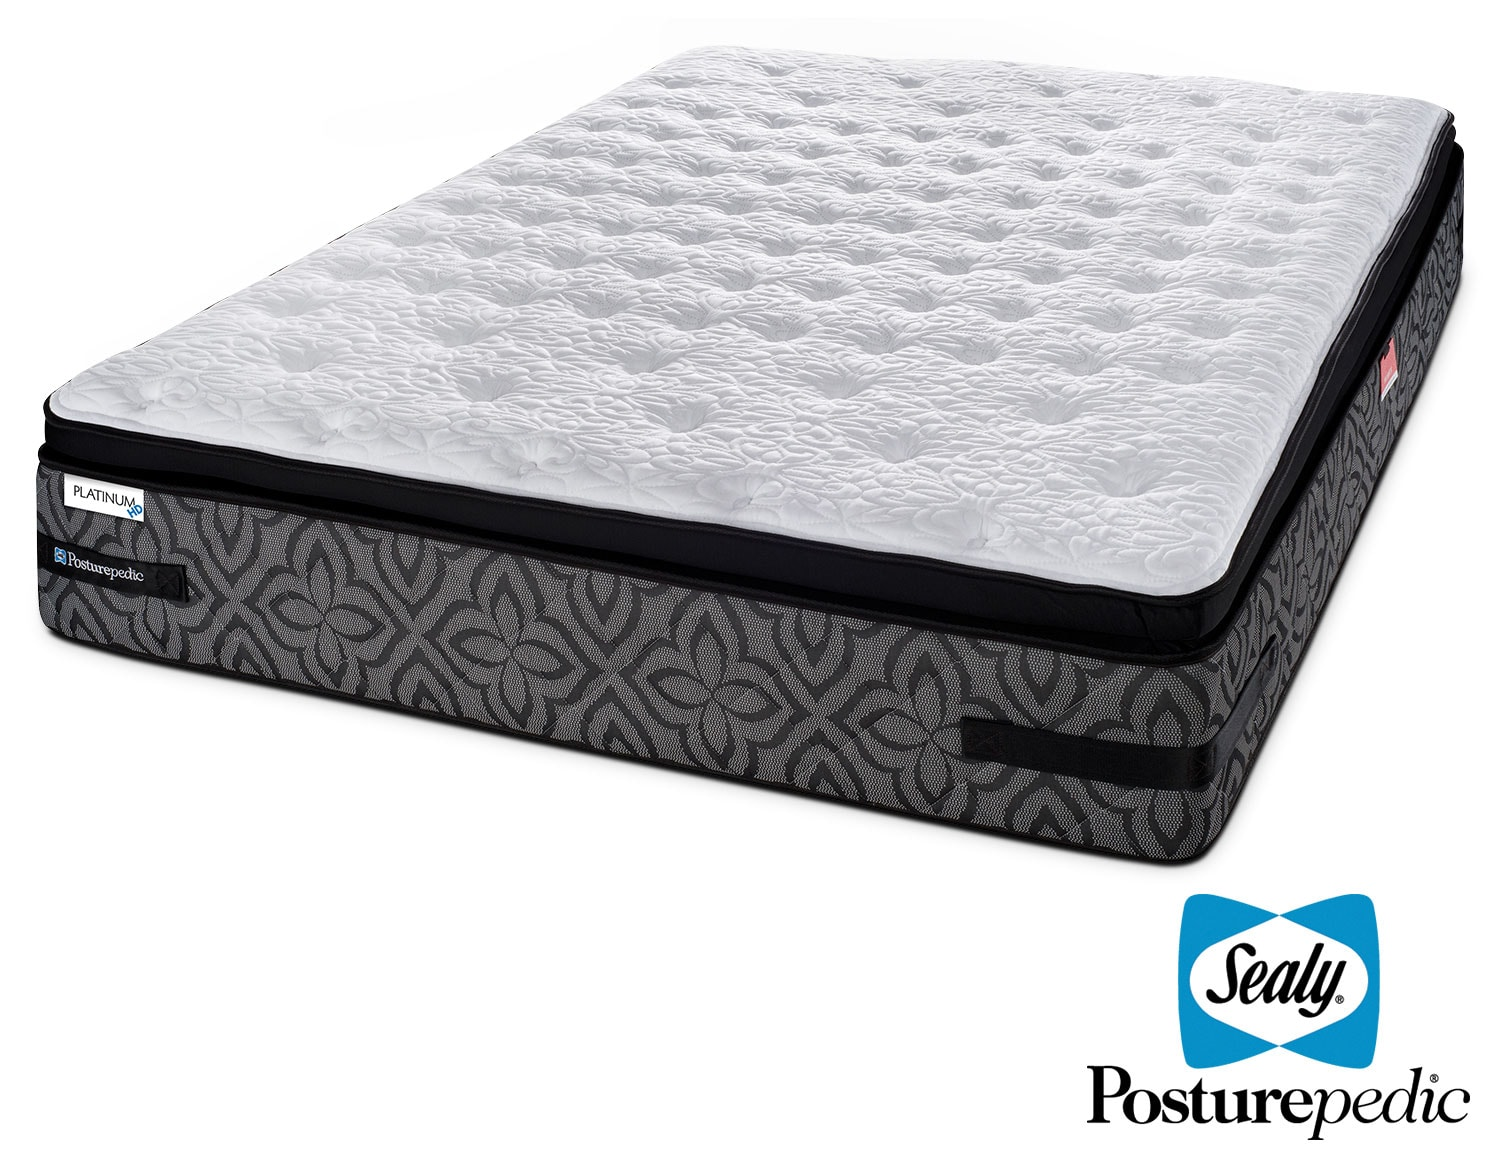 Sealy Posturepedic 2 K Firm King Mattress